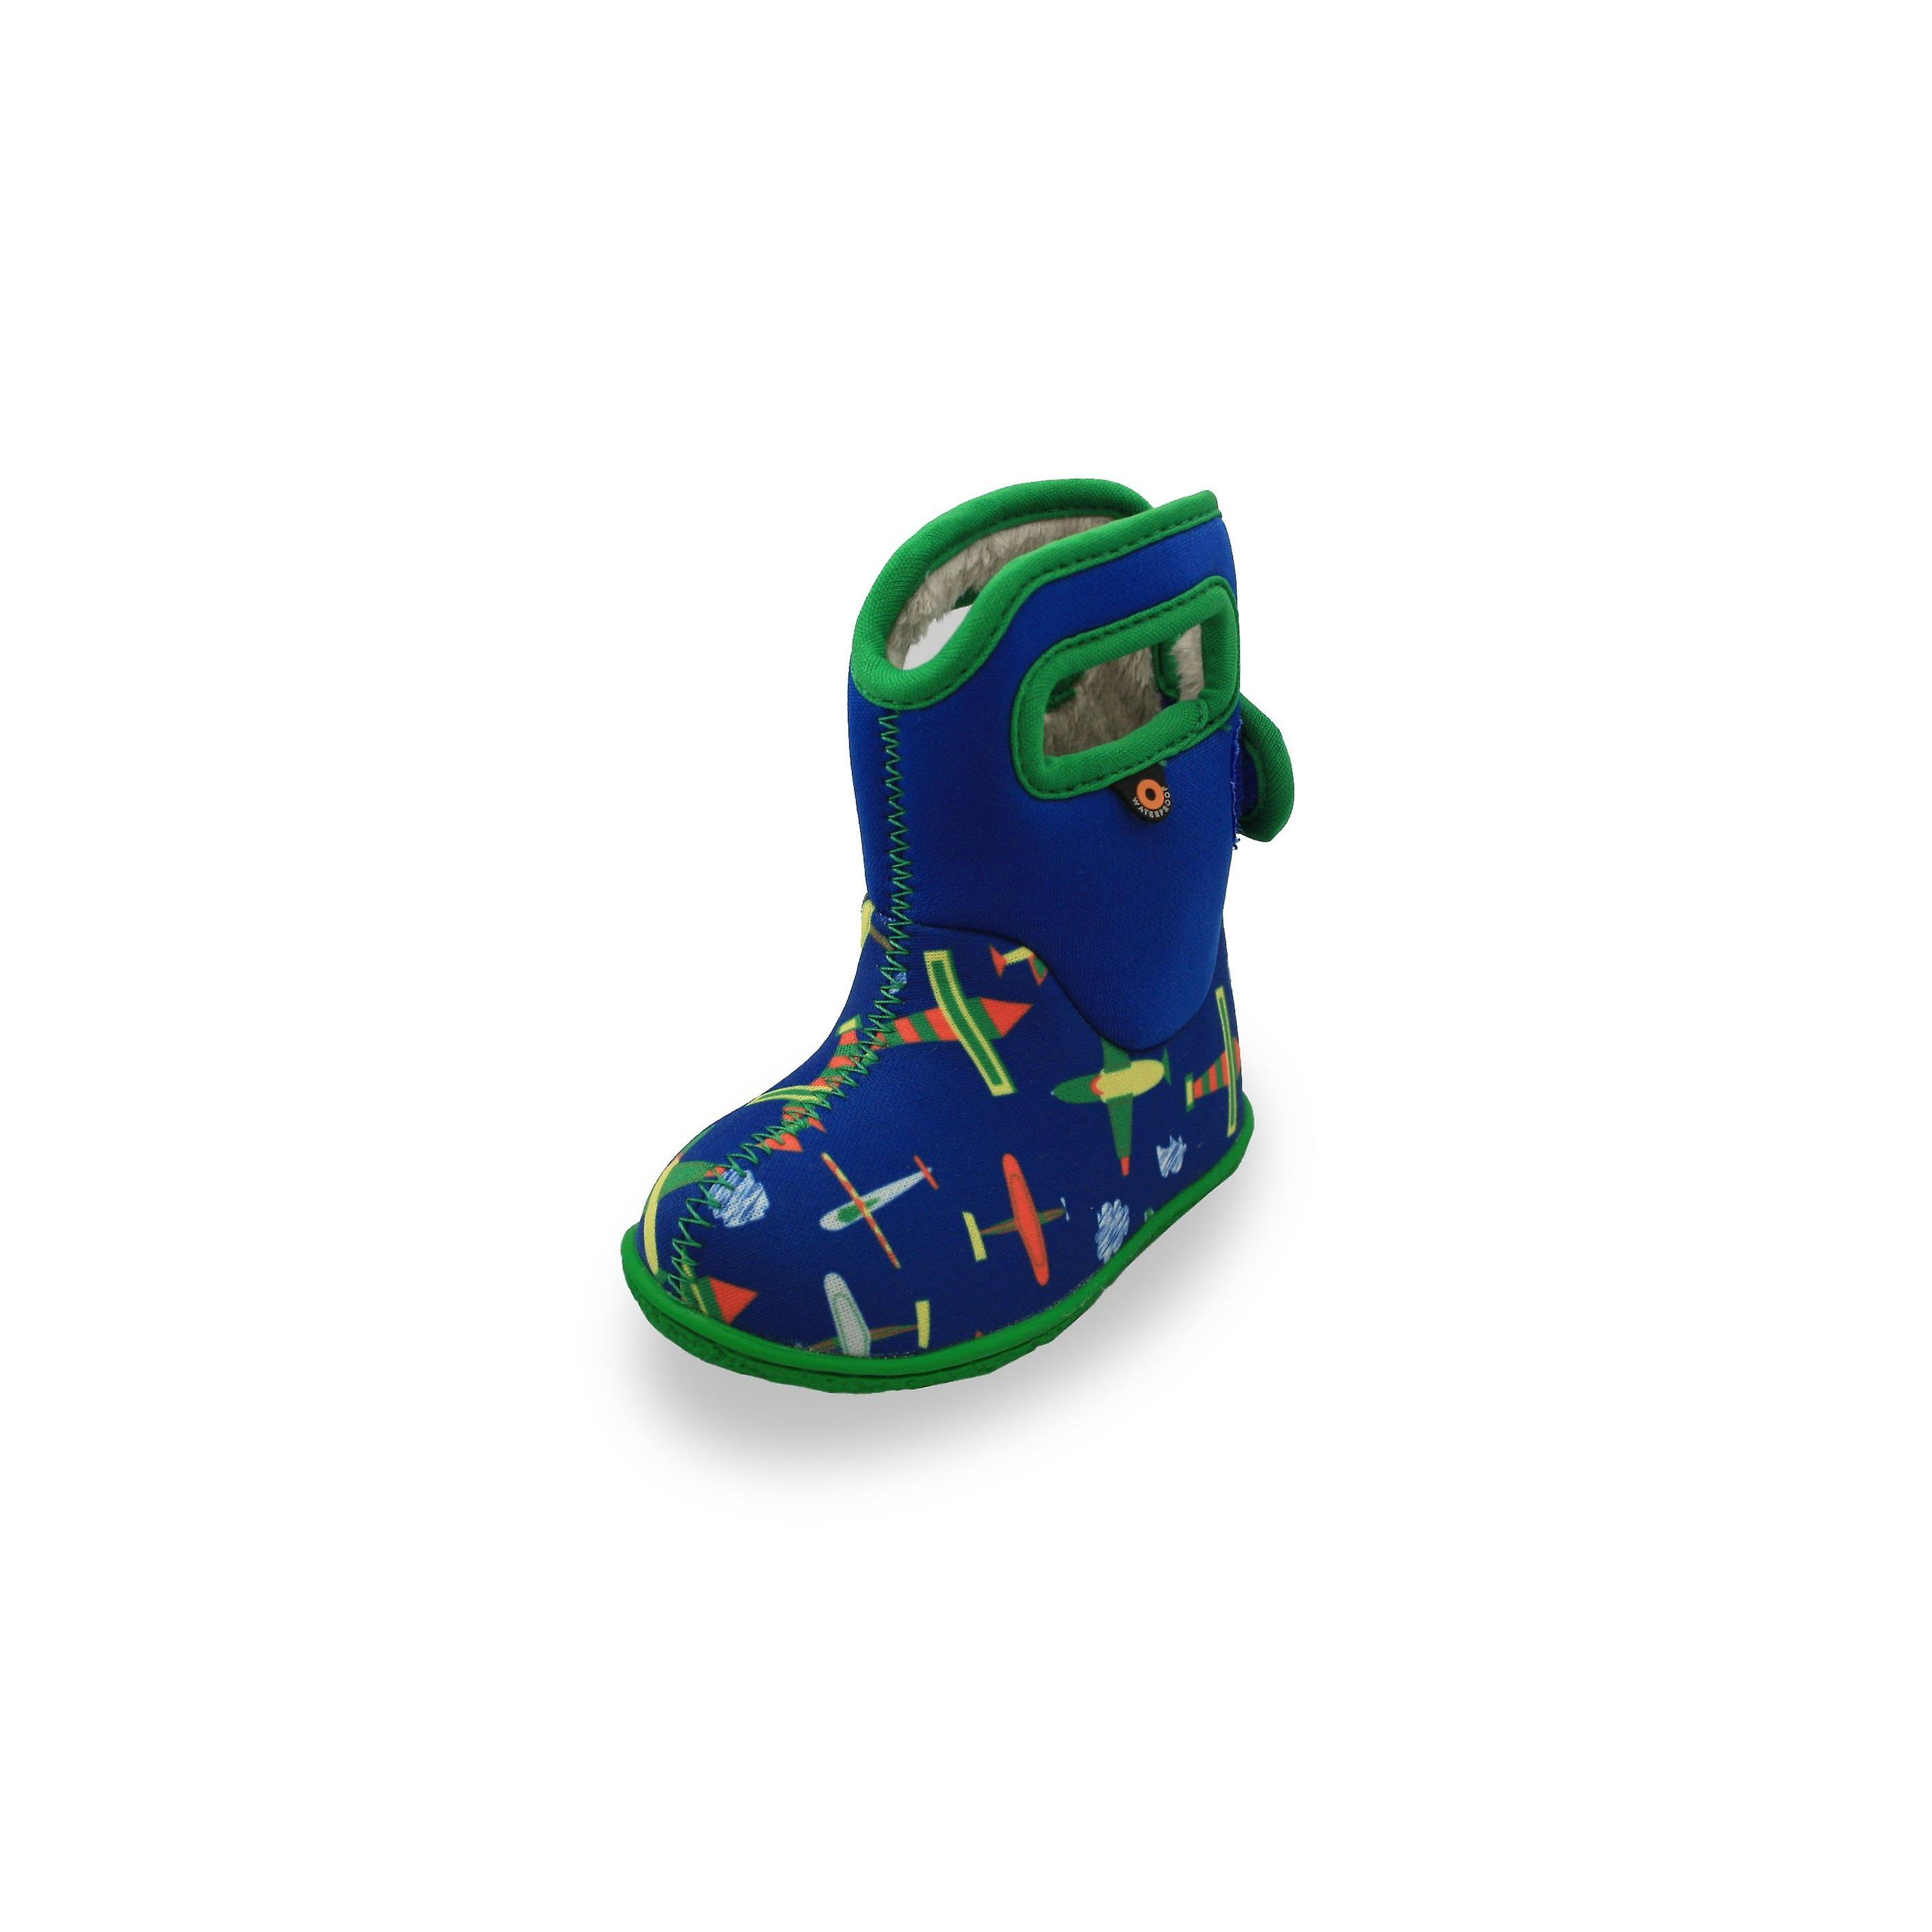 Baby bogs blue multi coloured plane boots